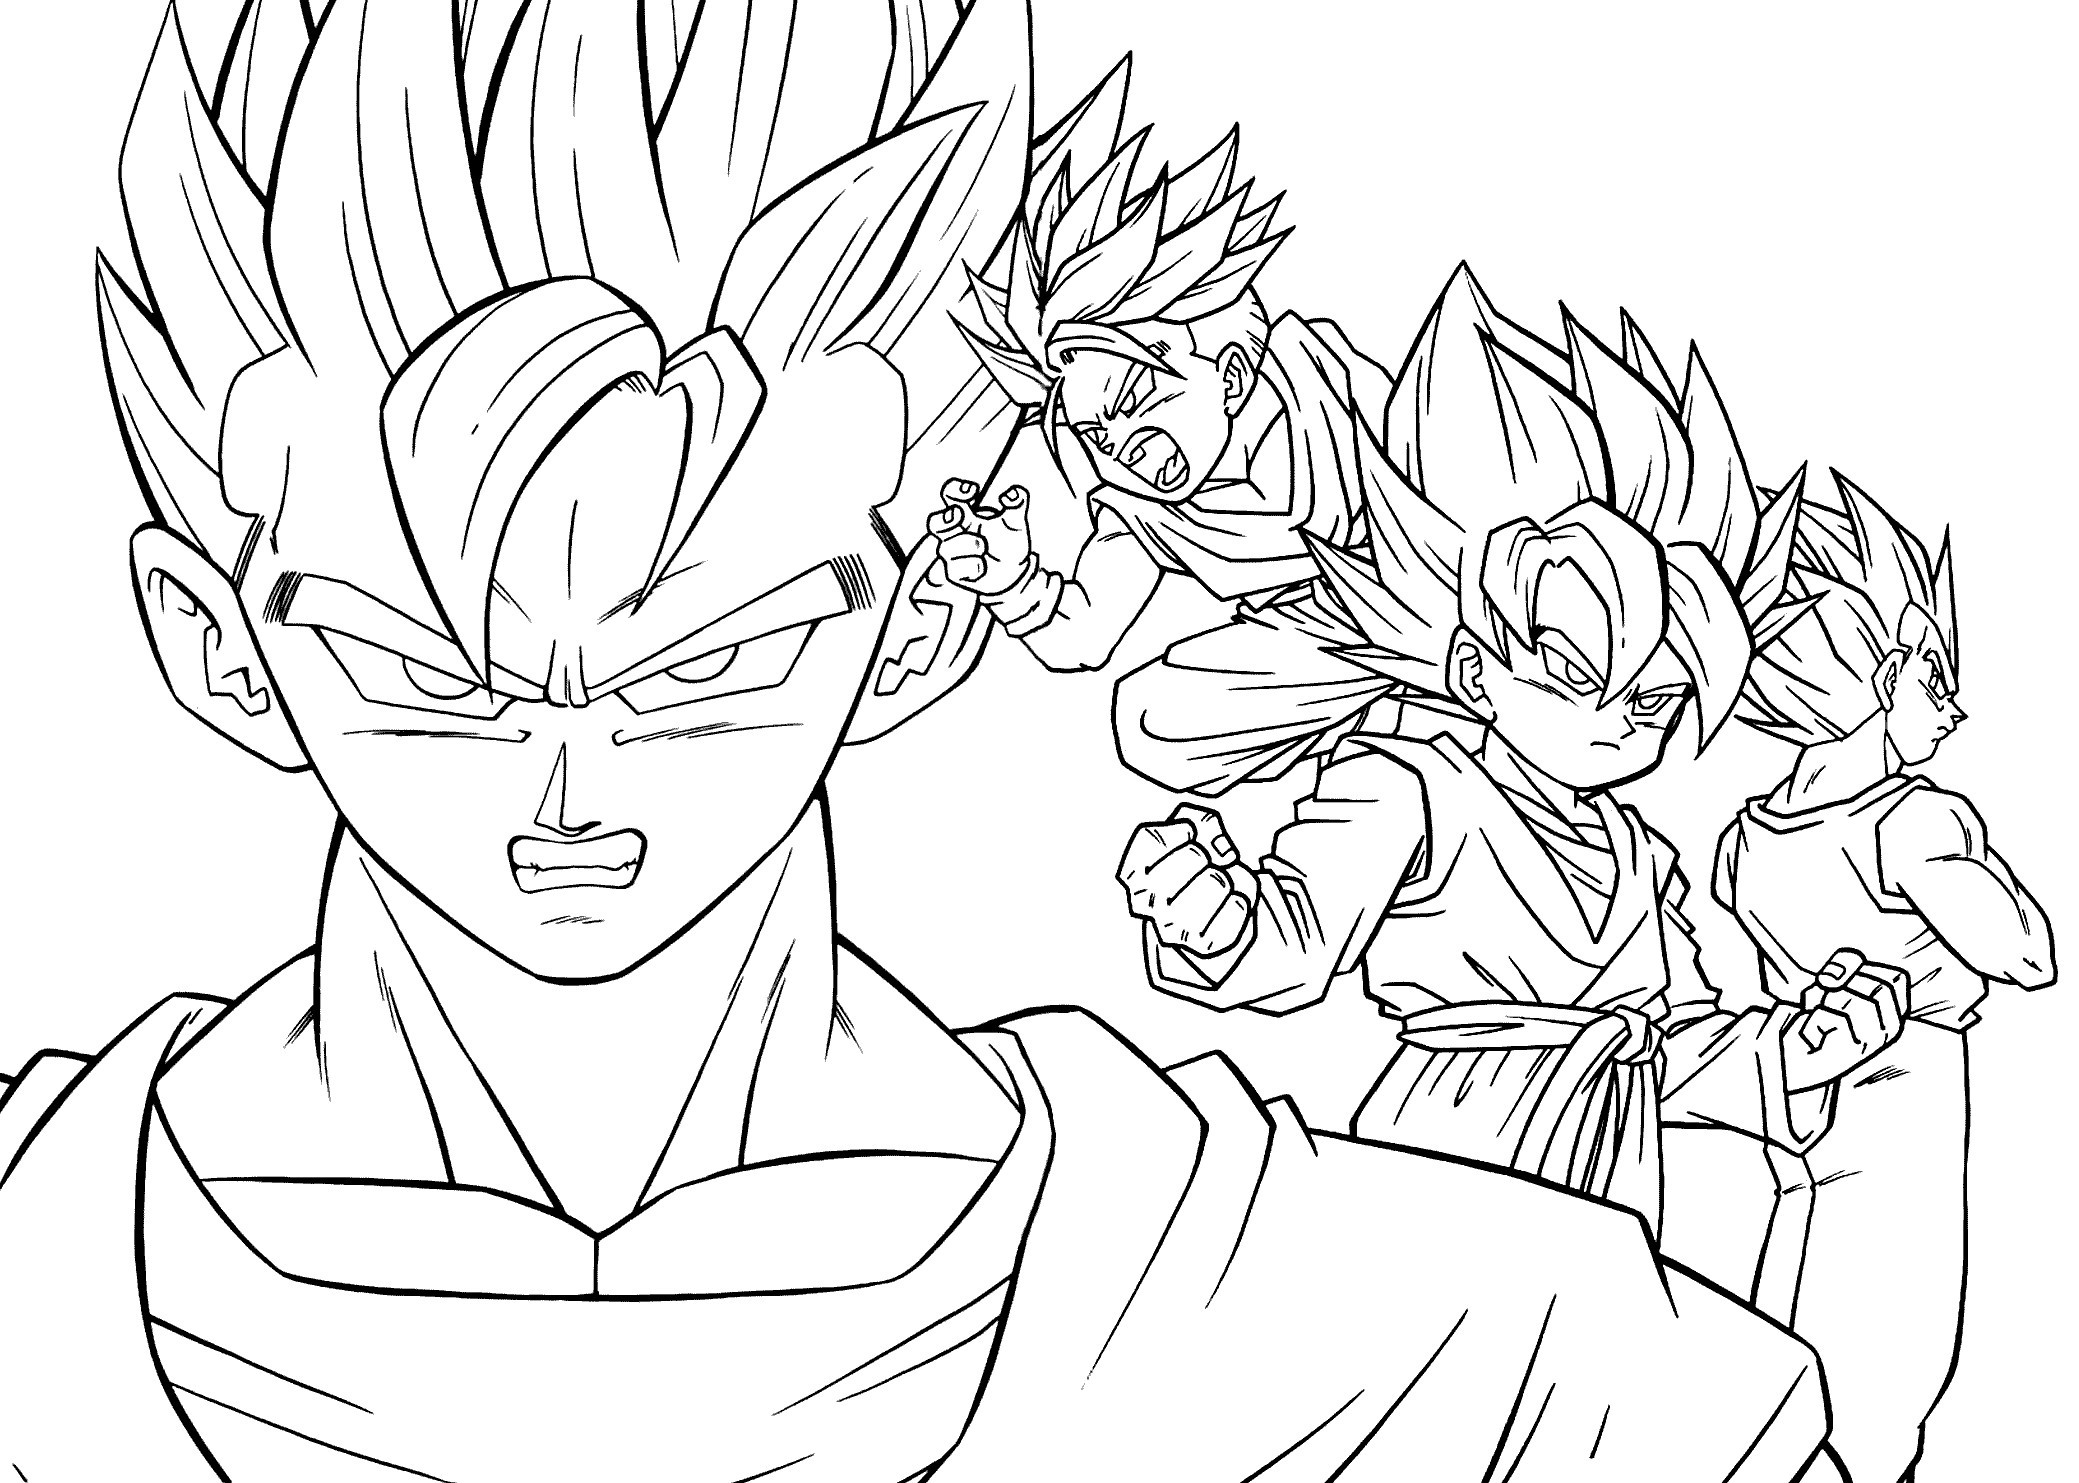 Christmas Coloring Pages Supercoloring With Dragon Ball Z Save Super